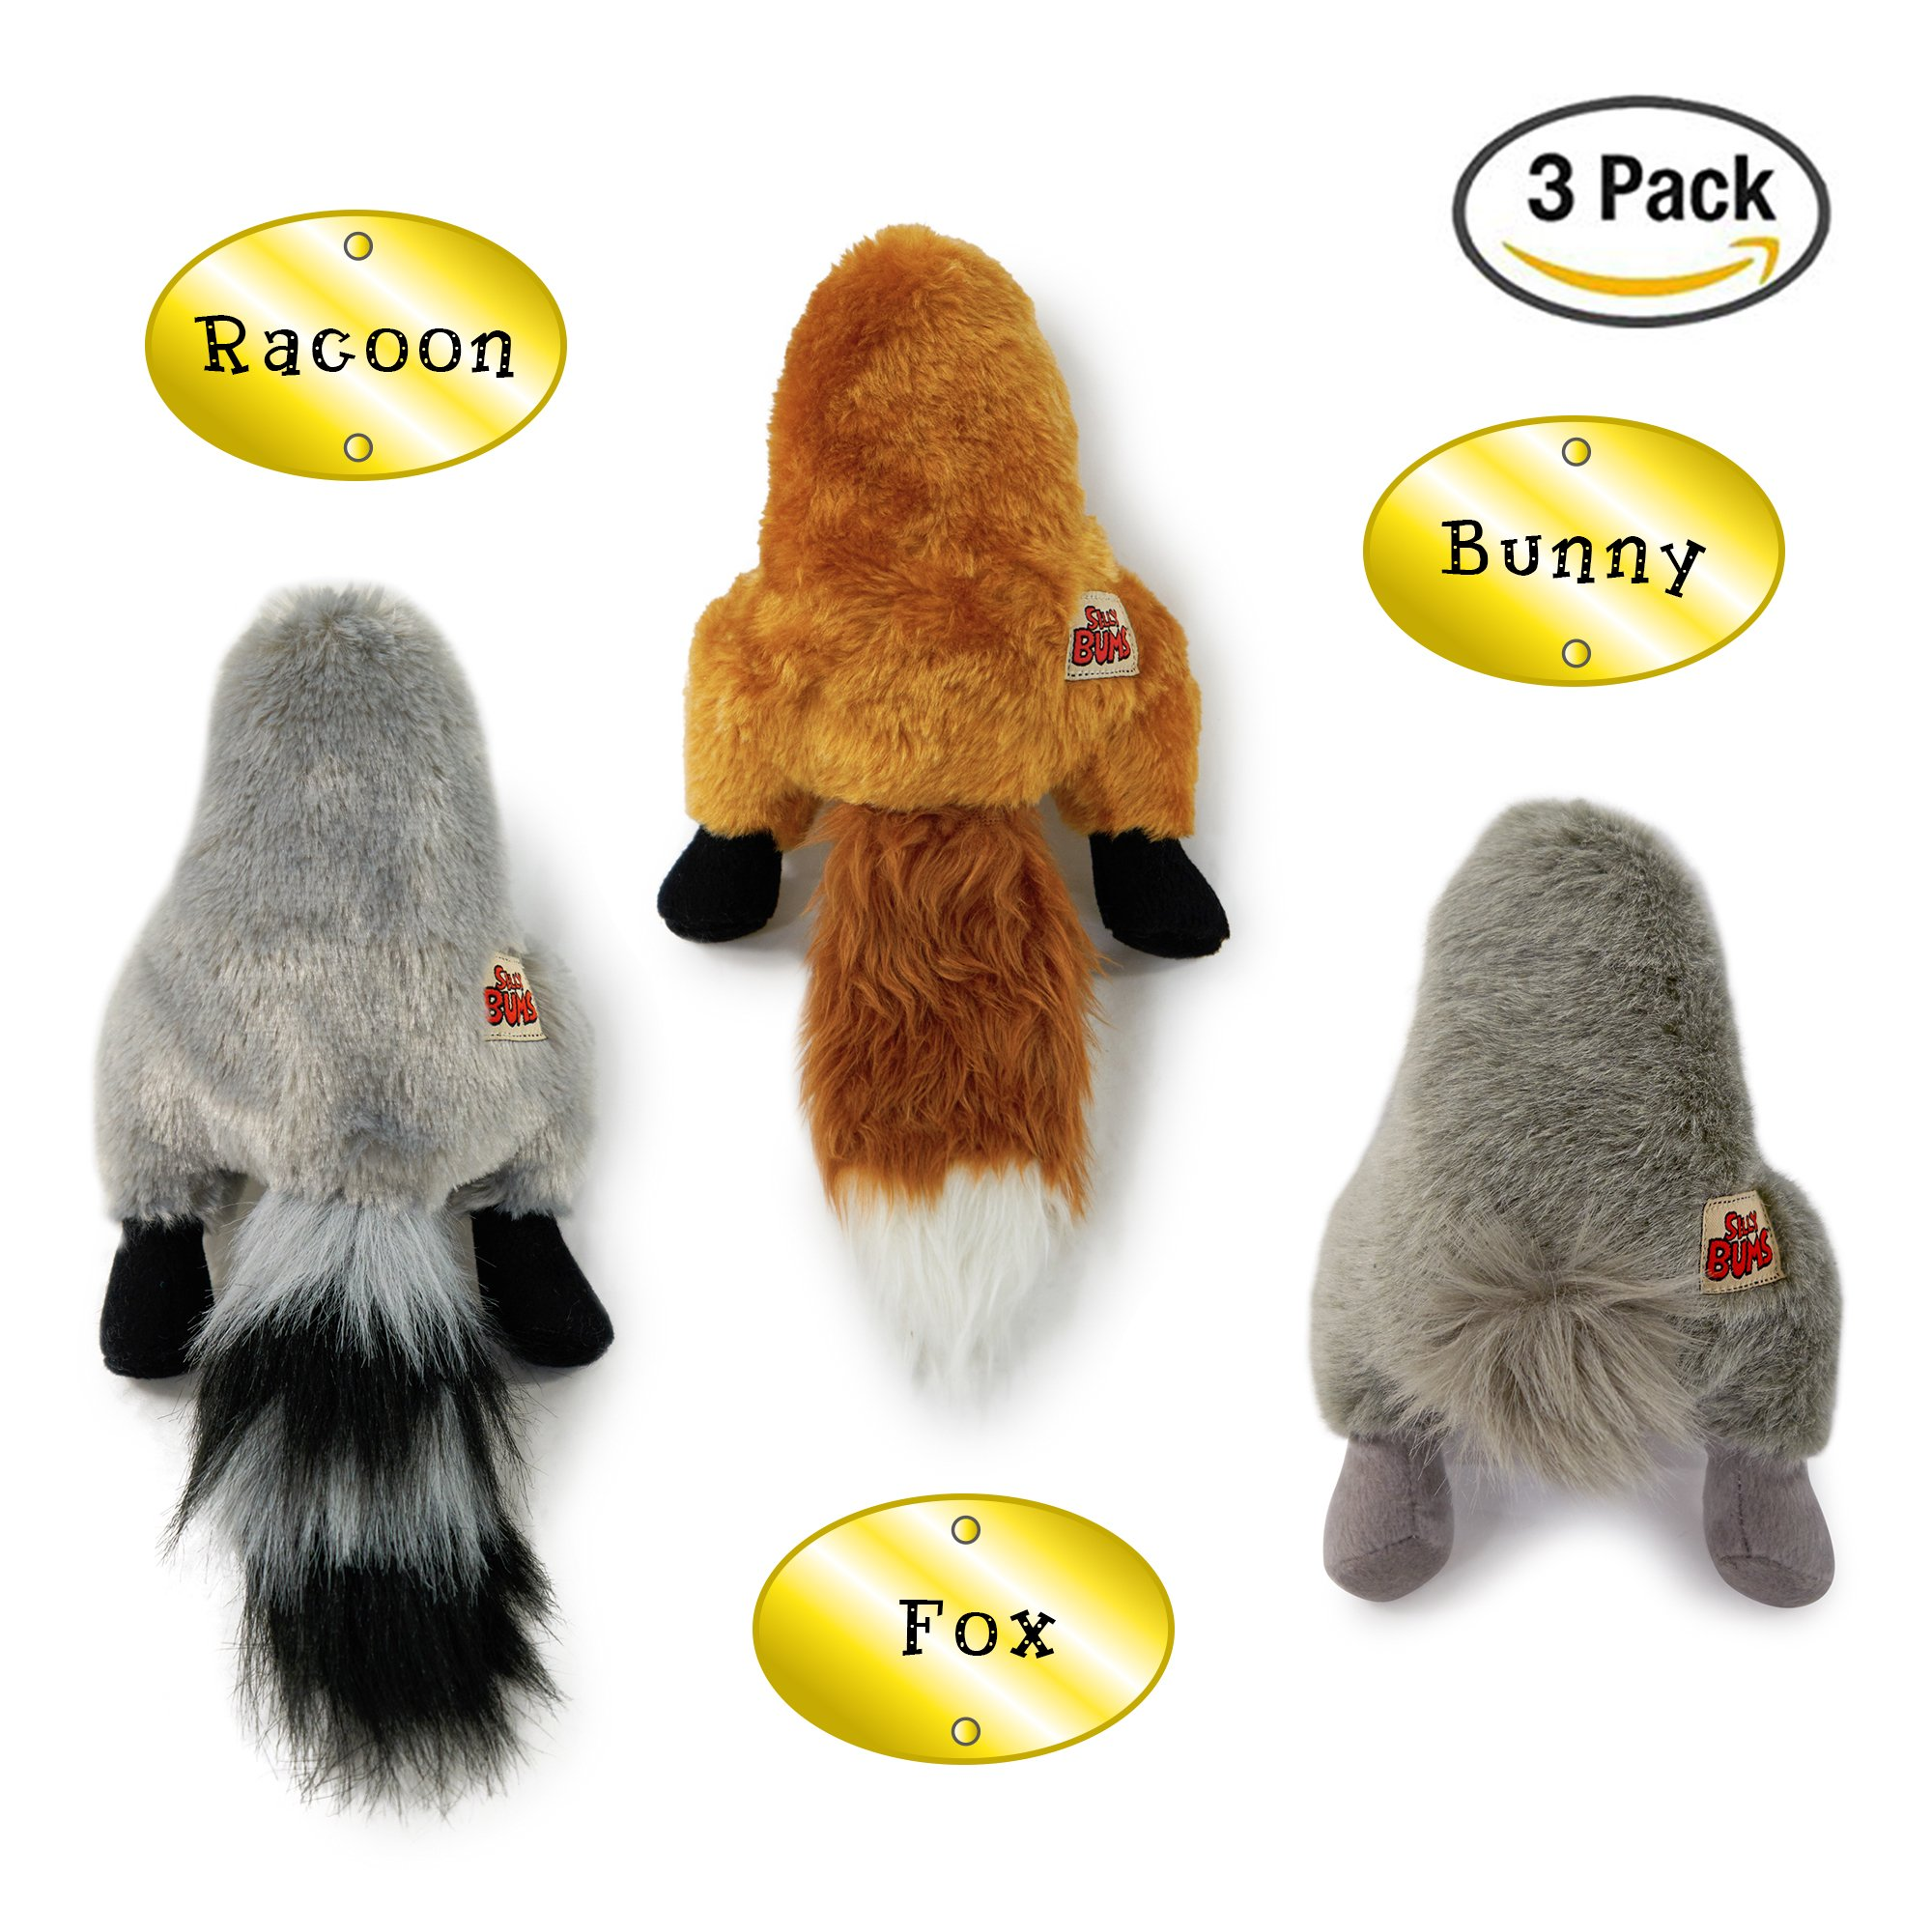 Pet Craft Supply Co. Funny Bums Woodland Animals Assortment Soft Plush Stuffed Crinkle Squeaking Cozy Cuddling Small Dog Toy (Fox, Bunny, Racoon)